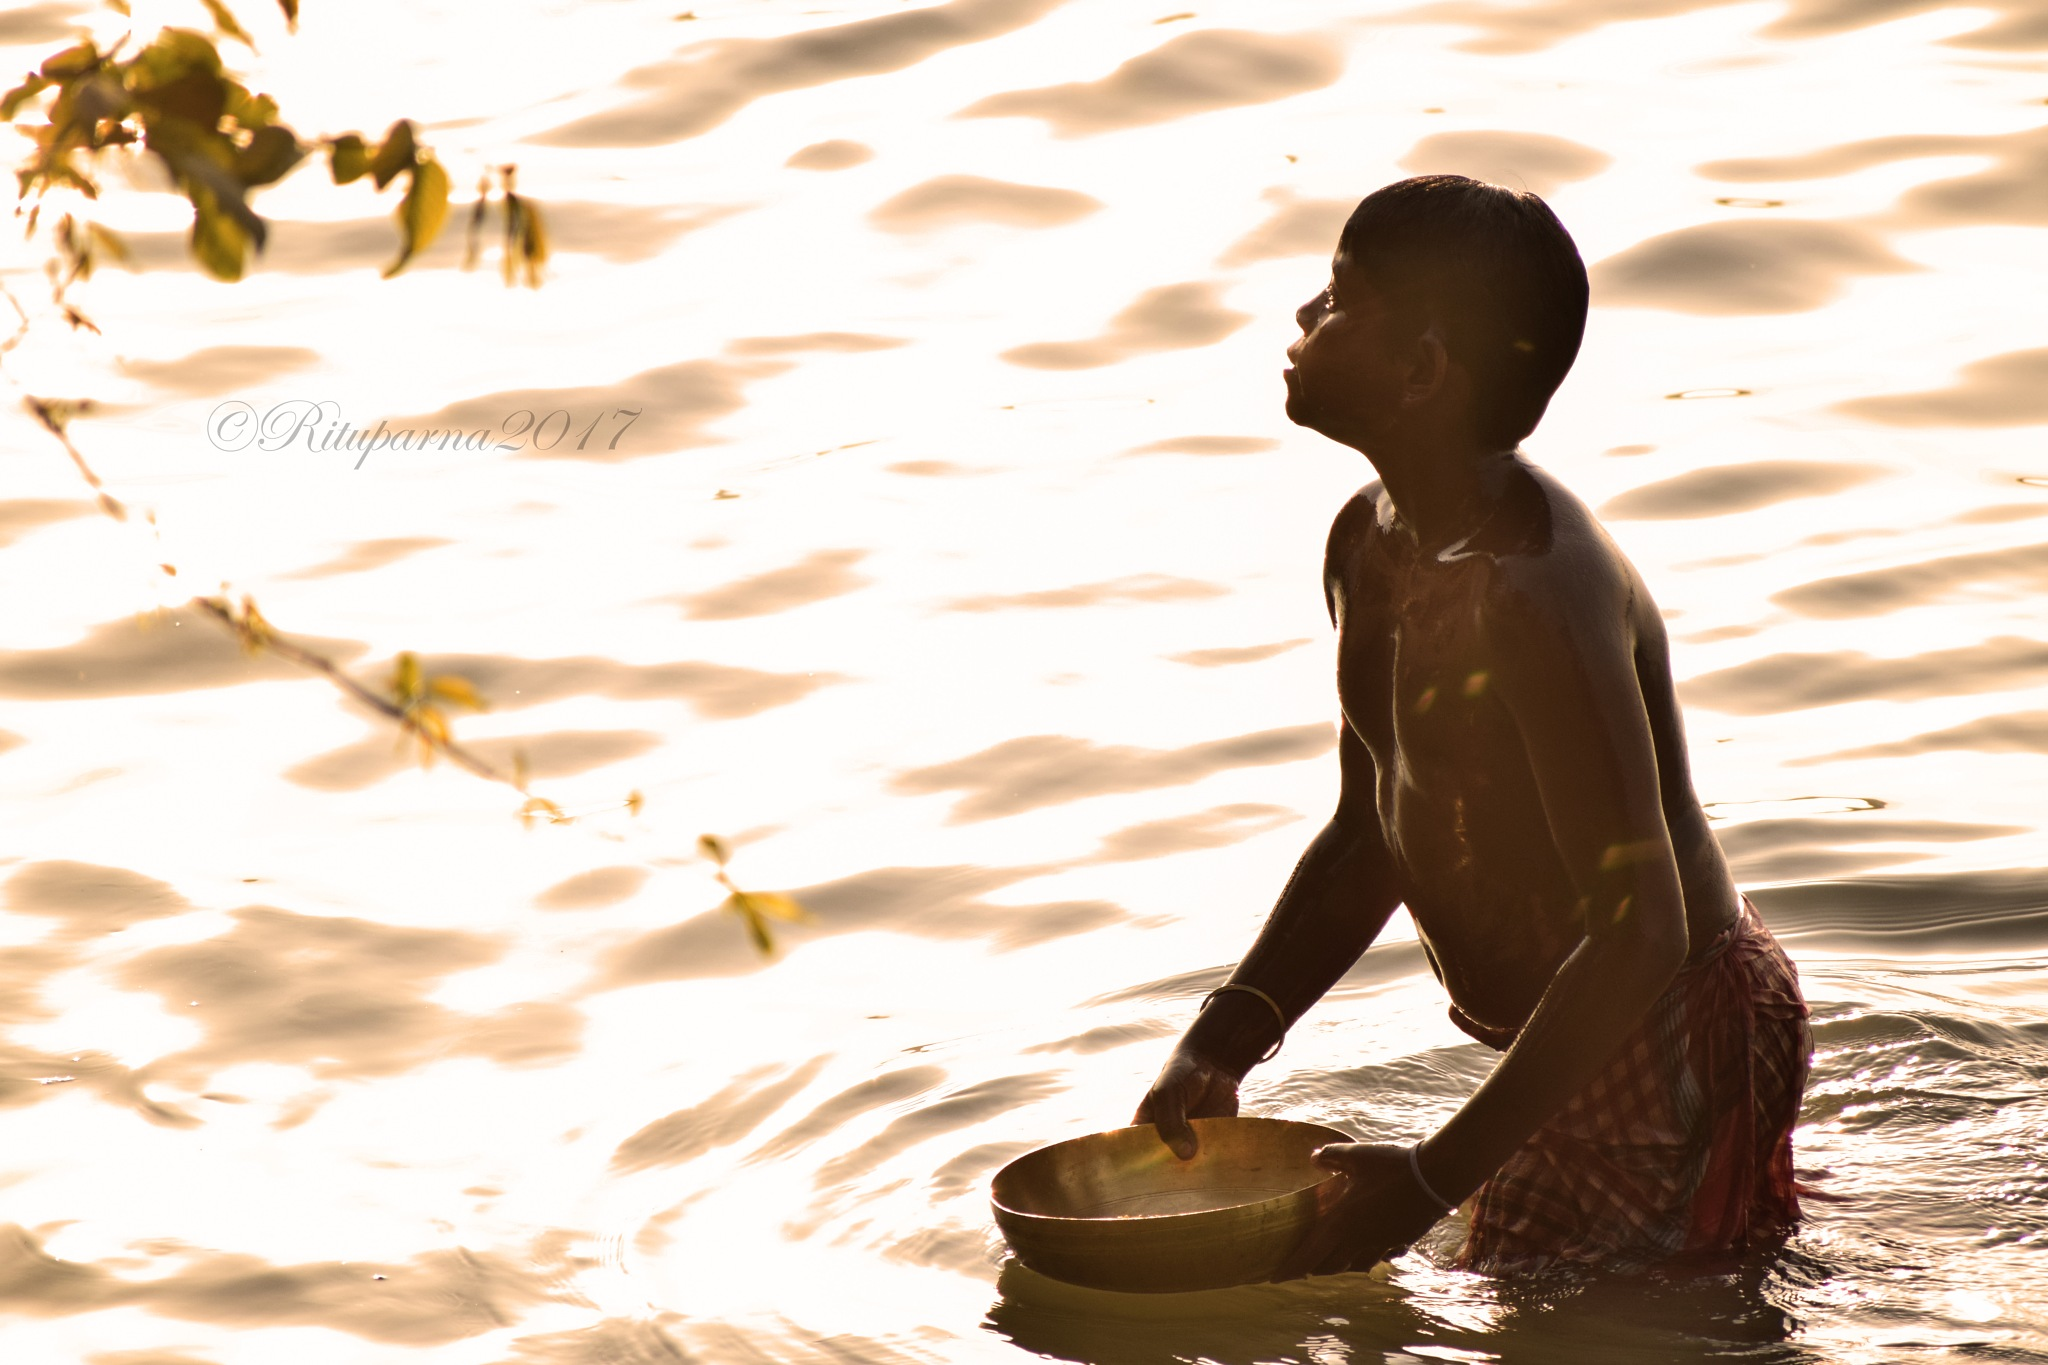 ~ The Boy Who Loves to Bathe in Evening Sun ~ by Rituparna Sarkar